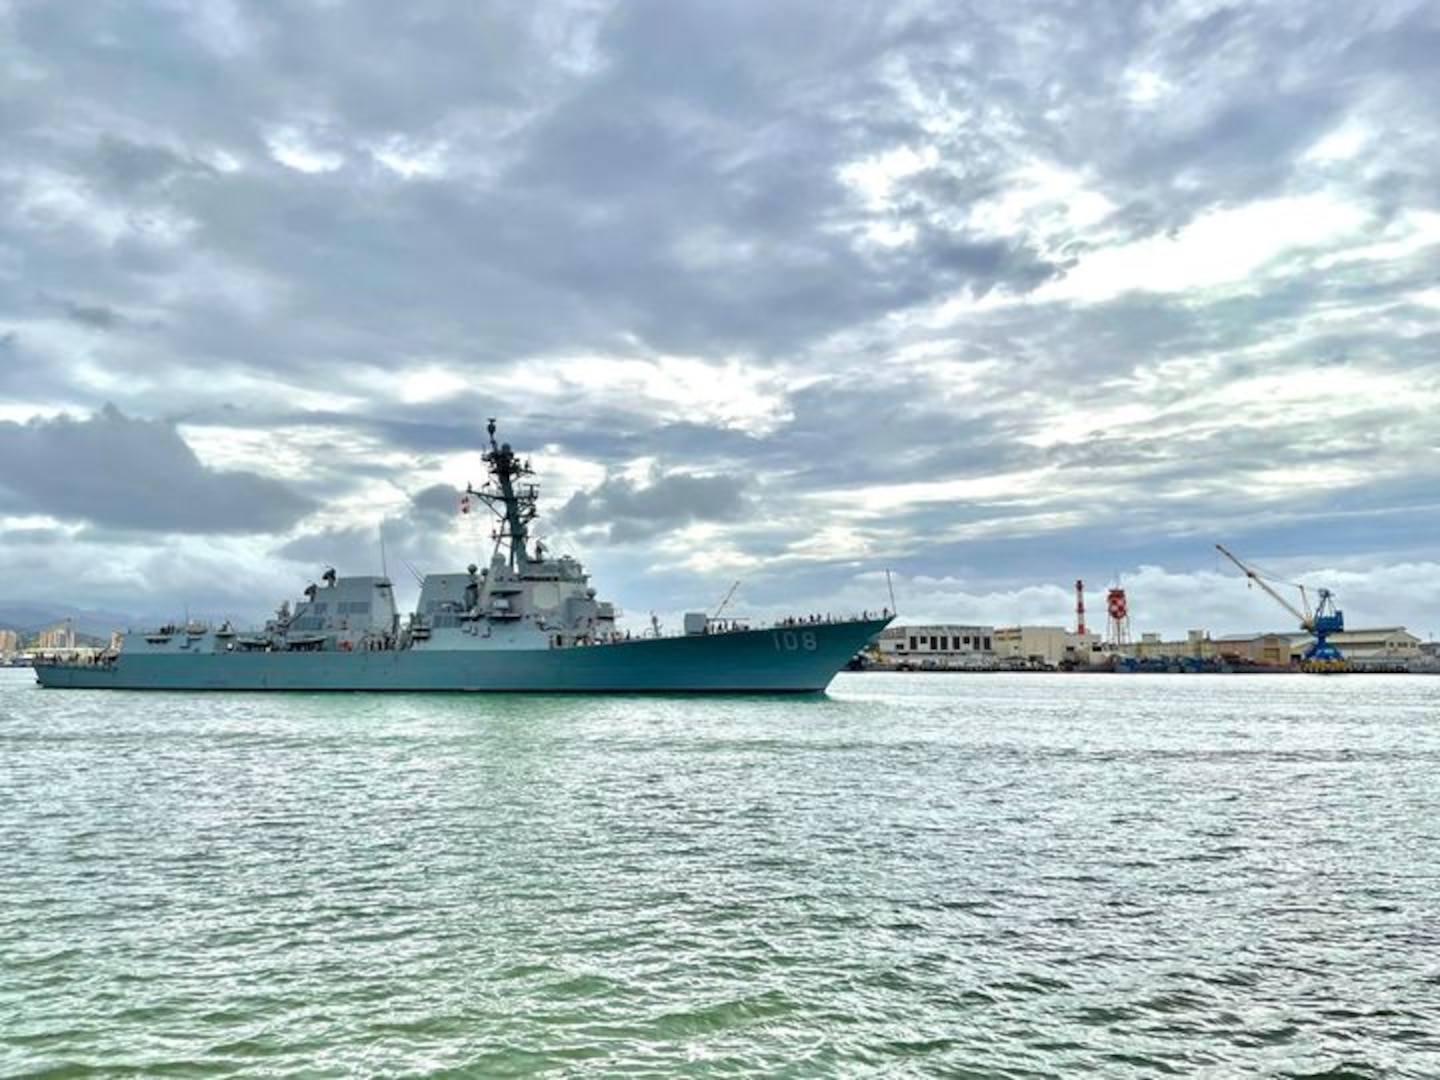 Hawaii Regional Maintenance Center (HRMC) successfully delivered Arleigh Burke-class guided-missile destroyer USS Wayne E. Meyer (DDG 108) from its Docking Selected Restricted Availability (DSRA) Jan. 29, 14 days early.